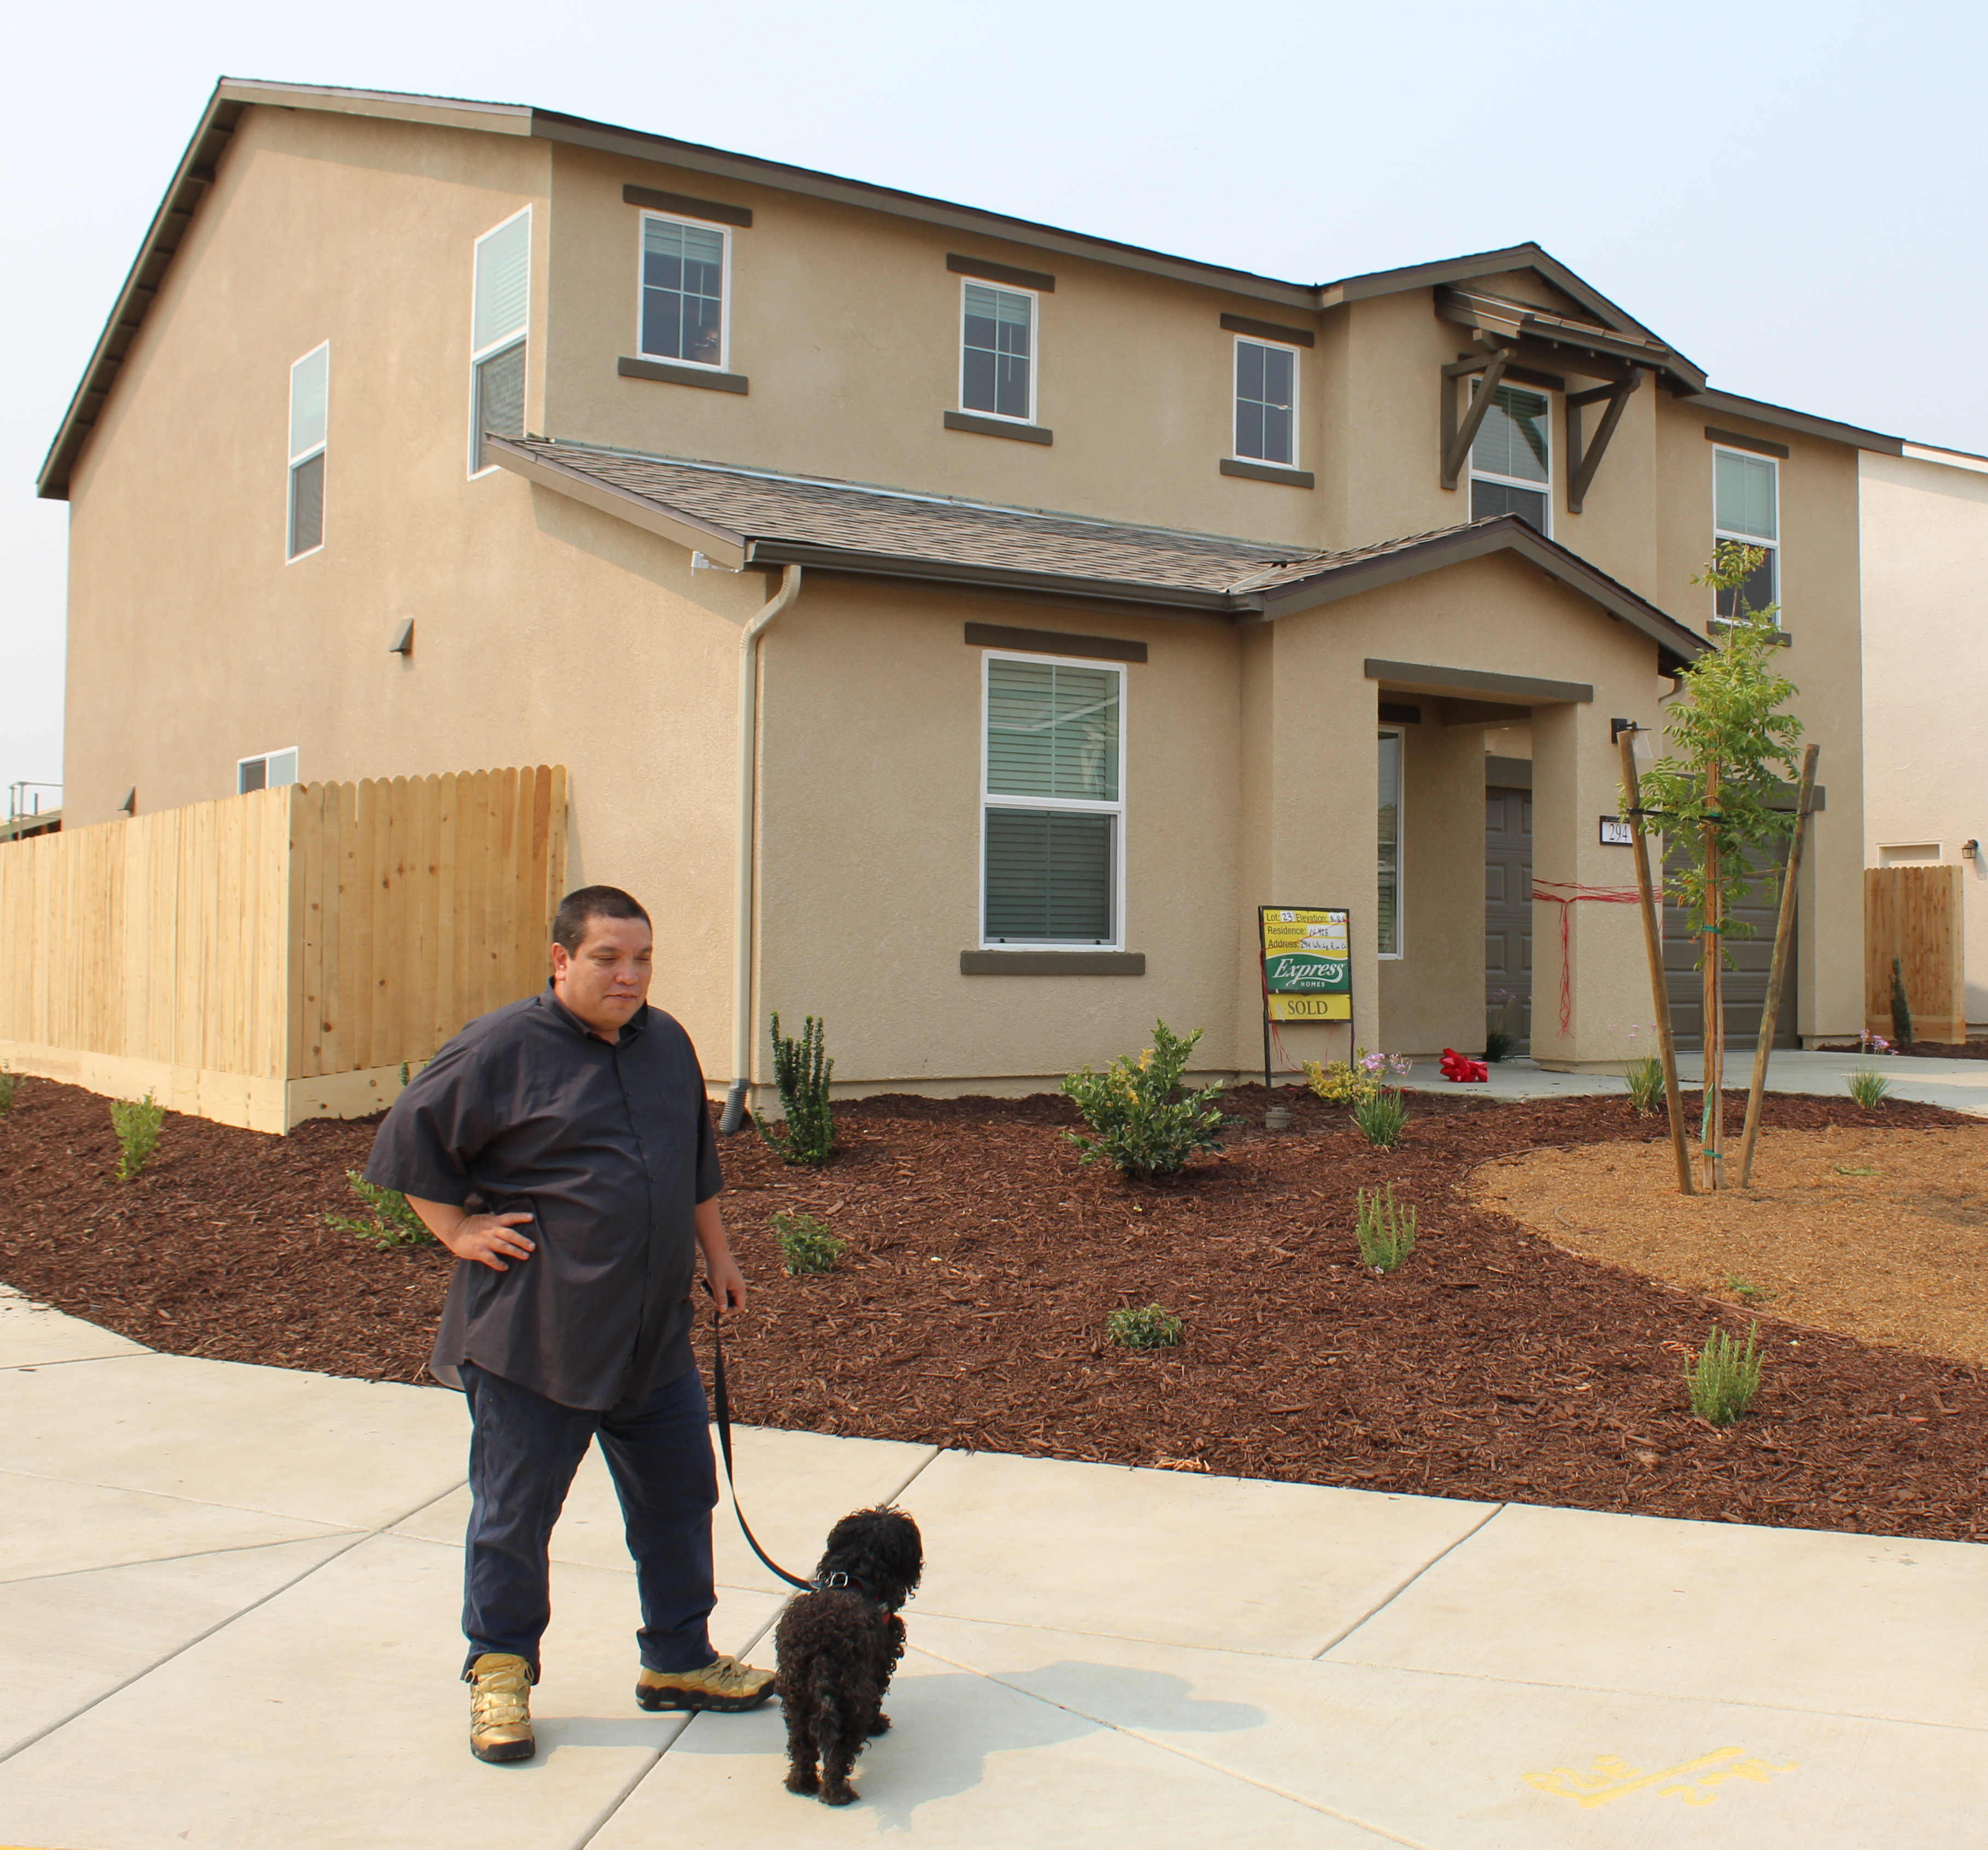 Photo of Veteran taking possession of two story beige home that sits on a corner lot in Merced.